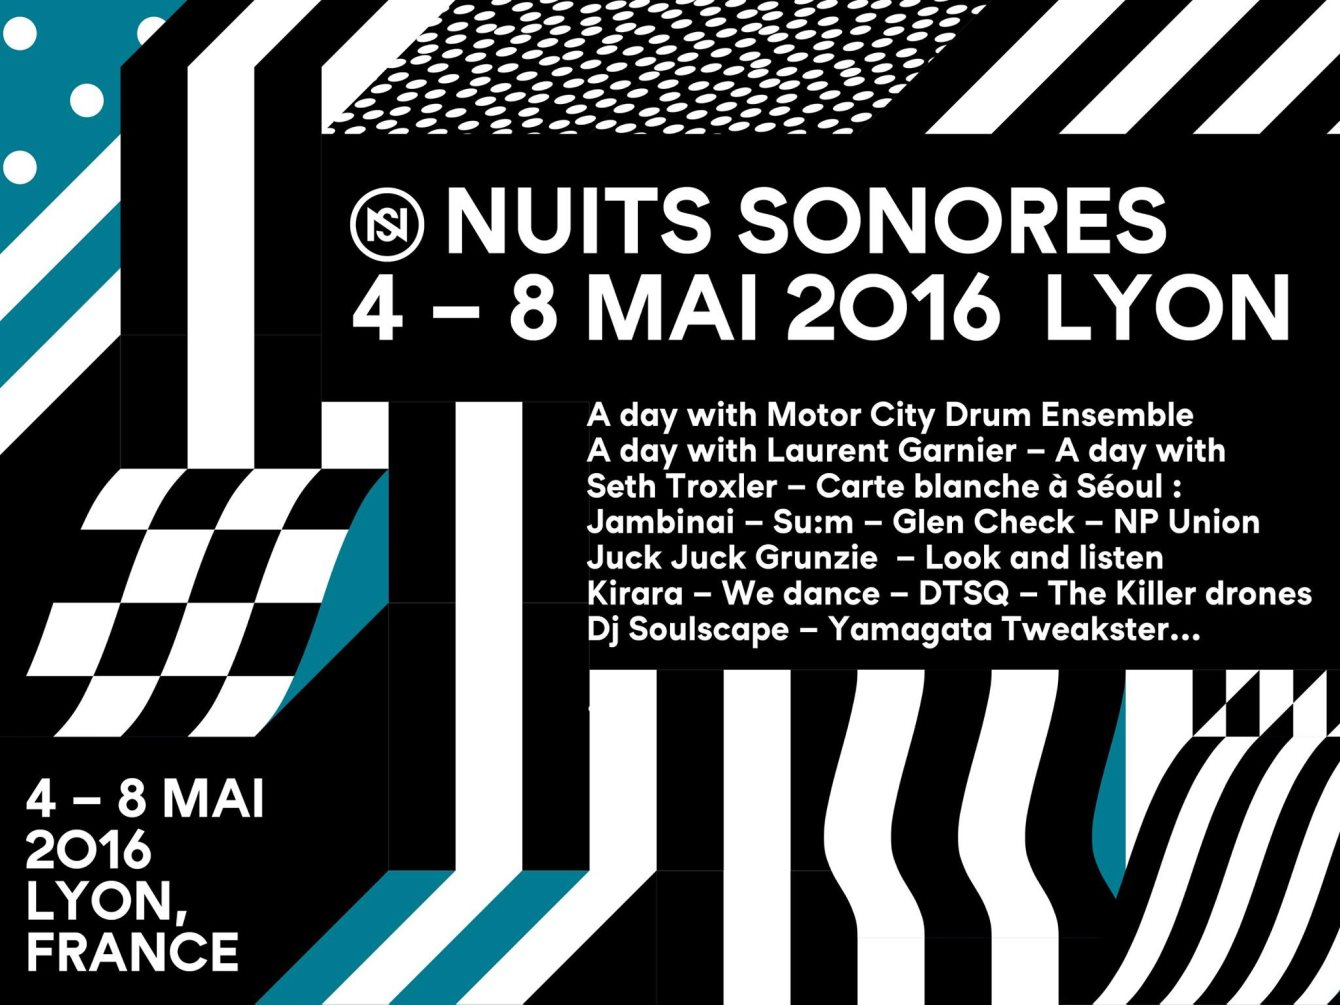 download → The Hacker - live at Nuits Sonores (Lyon, France) - 07-May-2016